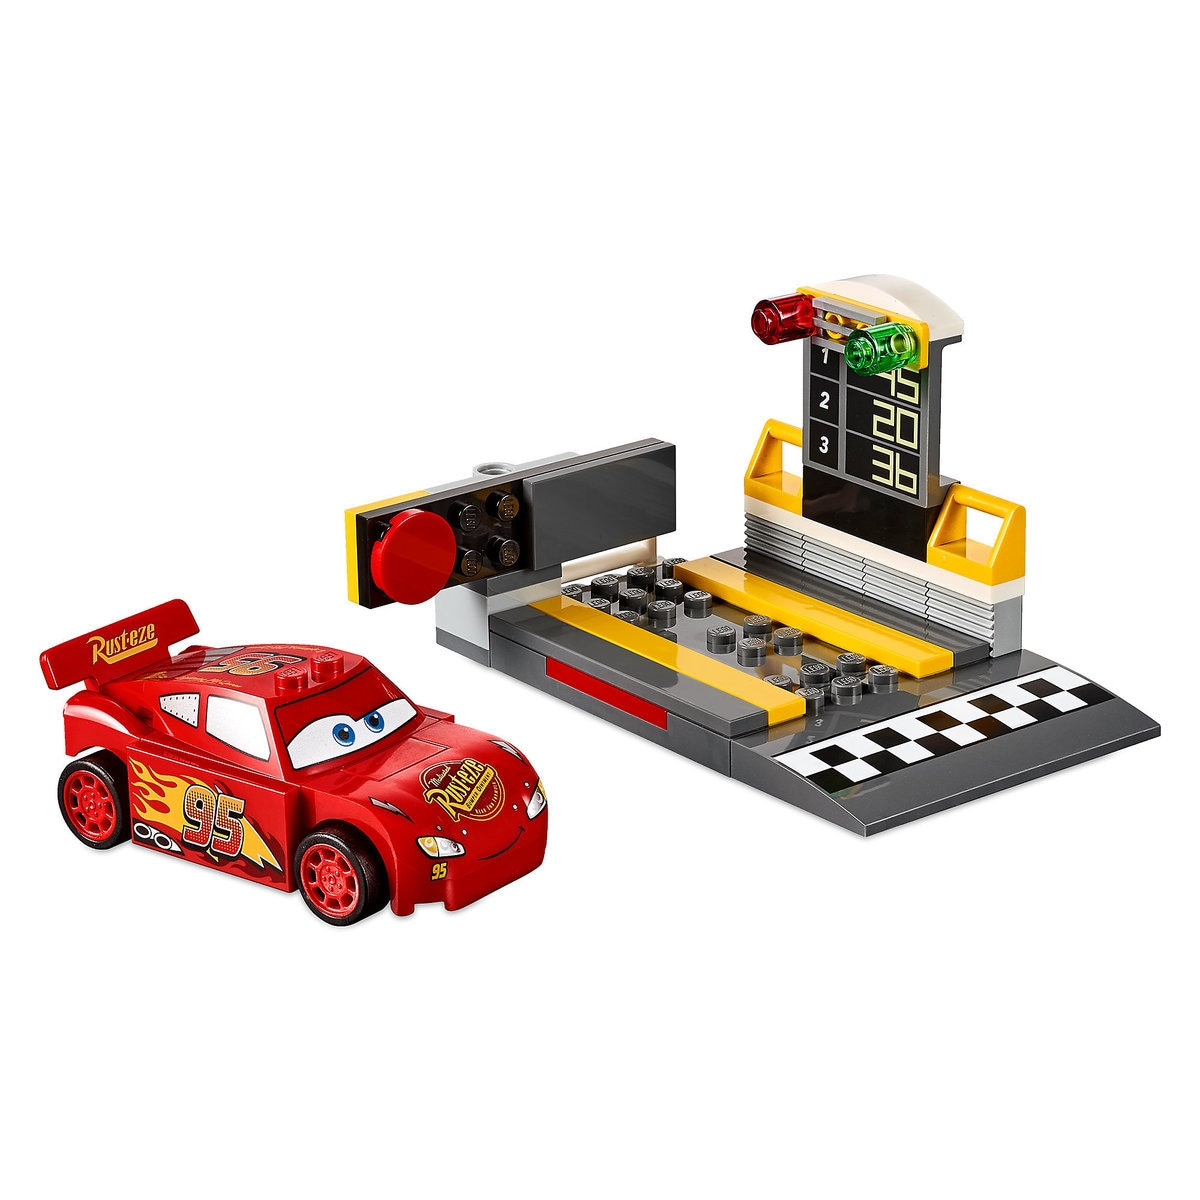 Product Image Of Lightning Mcqueen Sd Launcher Playset By Lego Juniors Cars 3 1